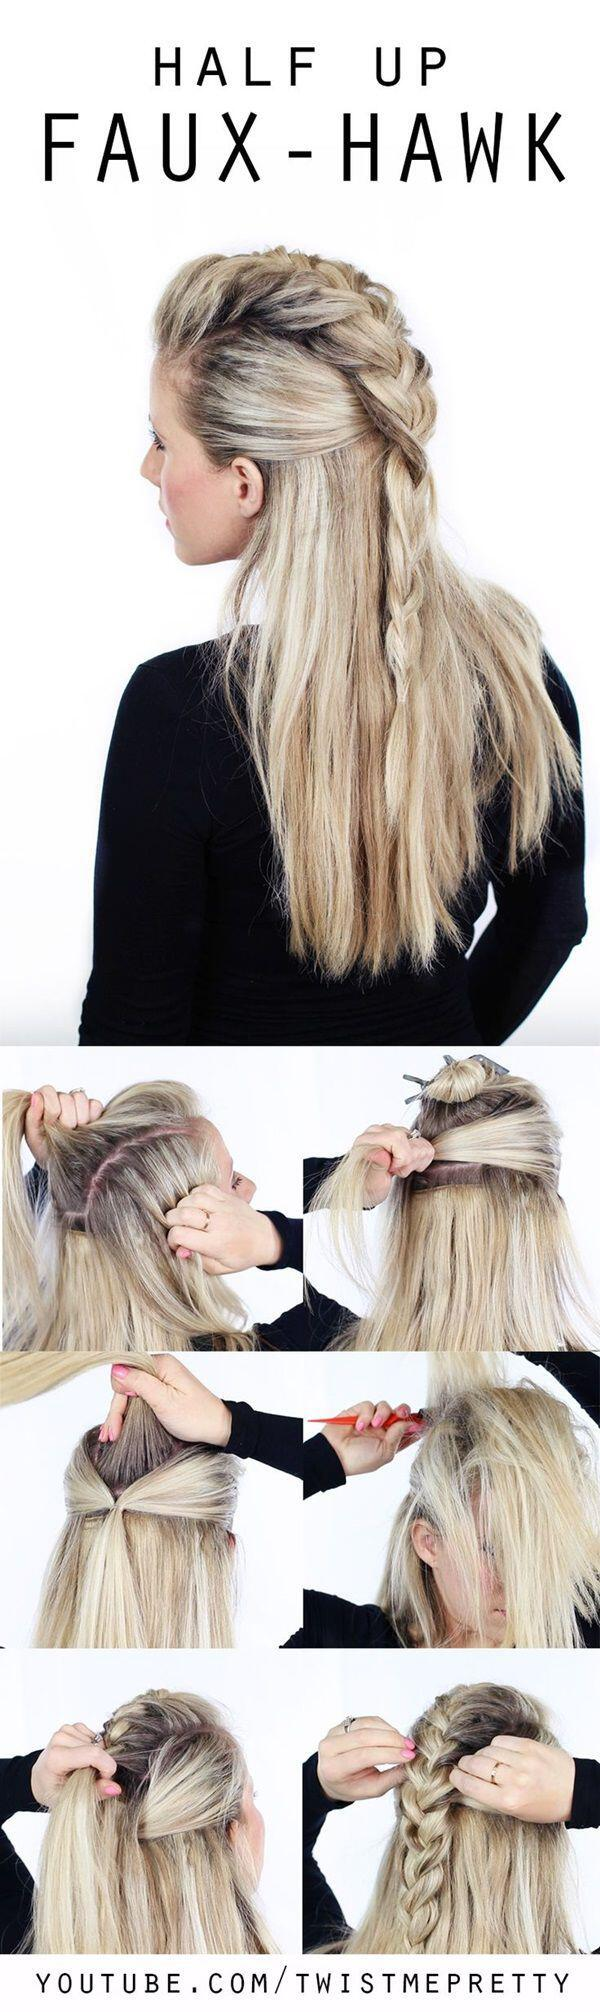 12 simple office hairstyles you have to try 6 - 12 simple office hairstyles you have to try